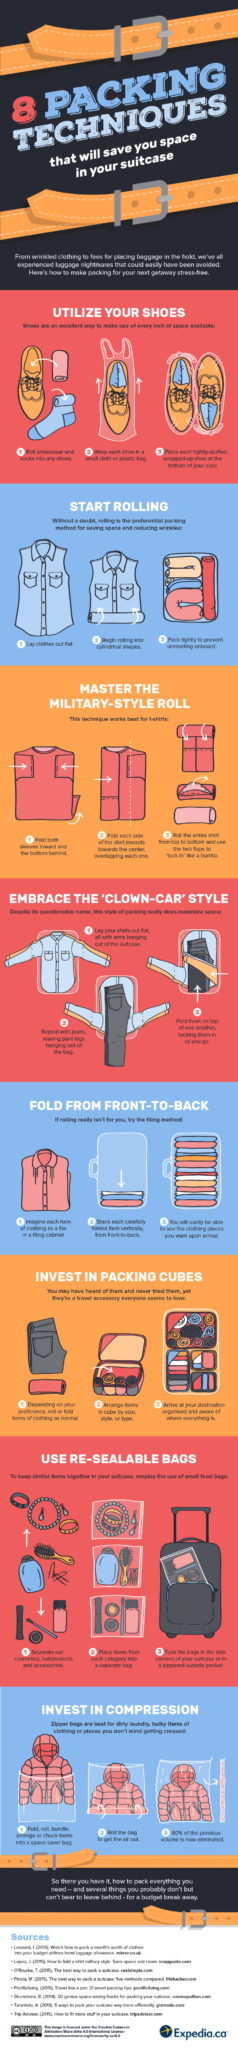 packing tips business travel life